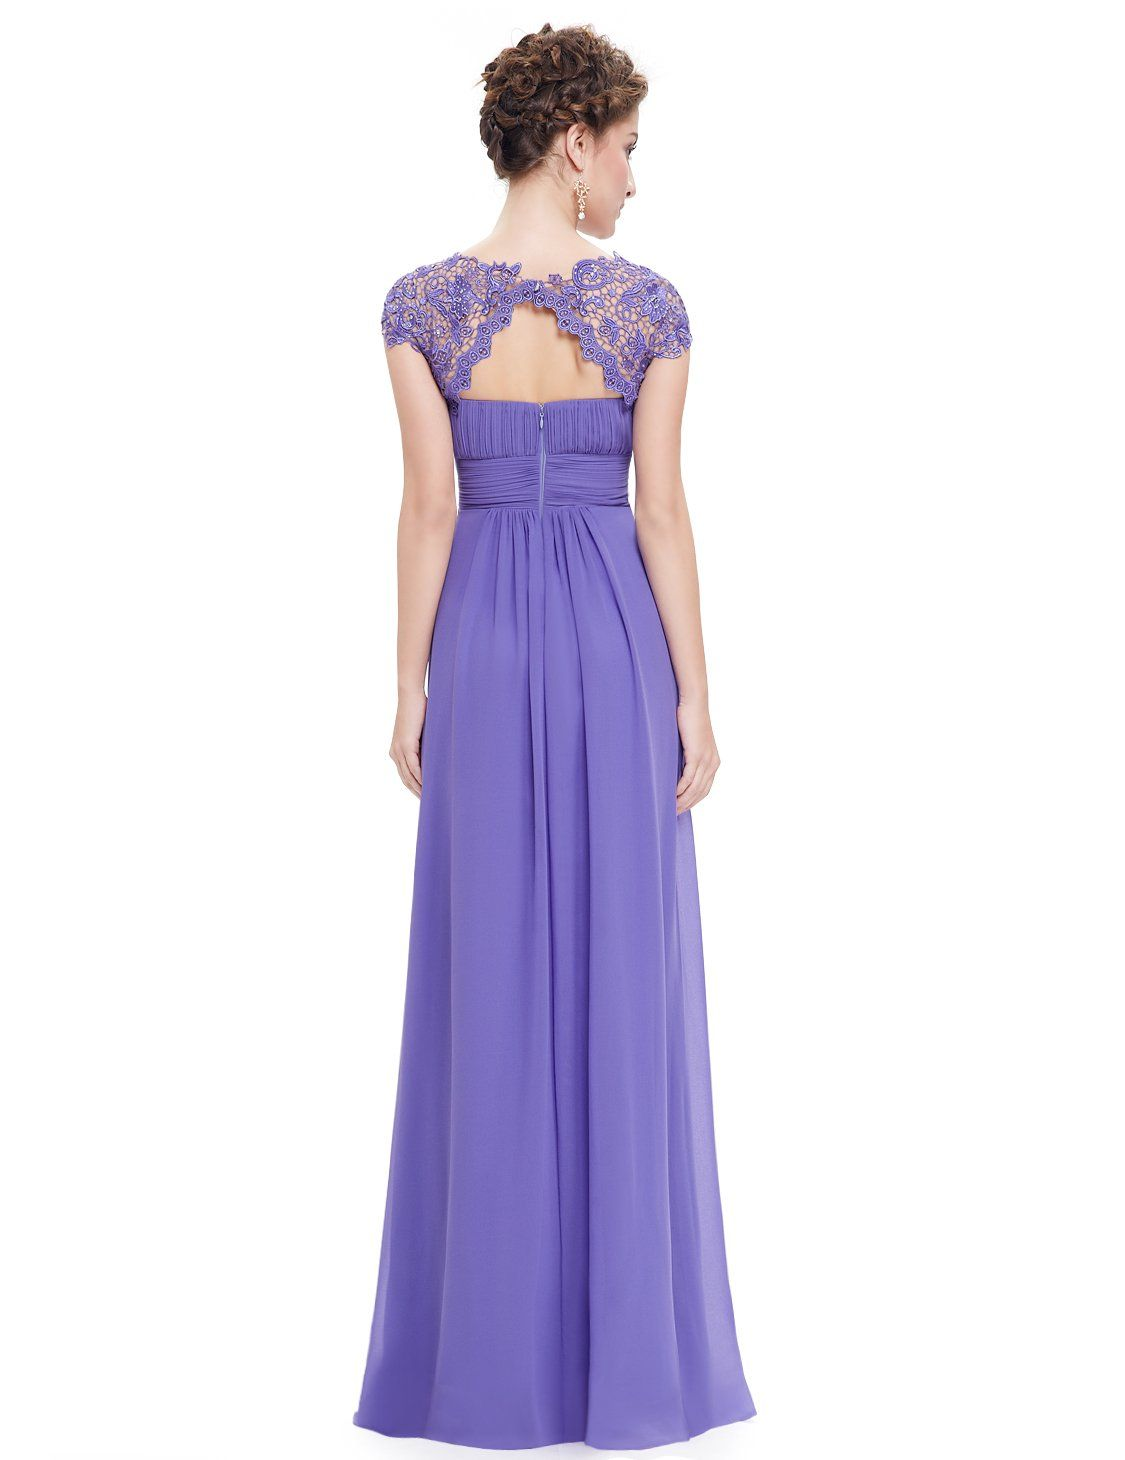 7ef1c0a9153 Maternity Styles - smart maternity maxi dress   EverPretty Womens Cap Sleeve  Lace Neckline Ruched Bust Evening Gown 4 US Periwinkle     Check out the  image ...